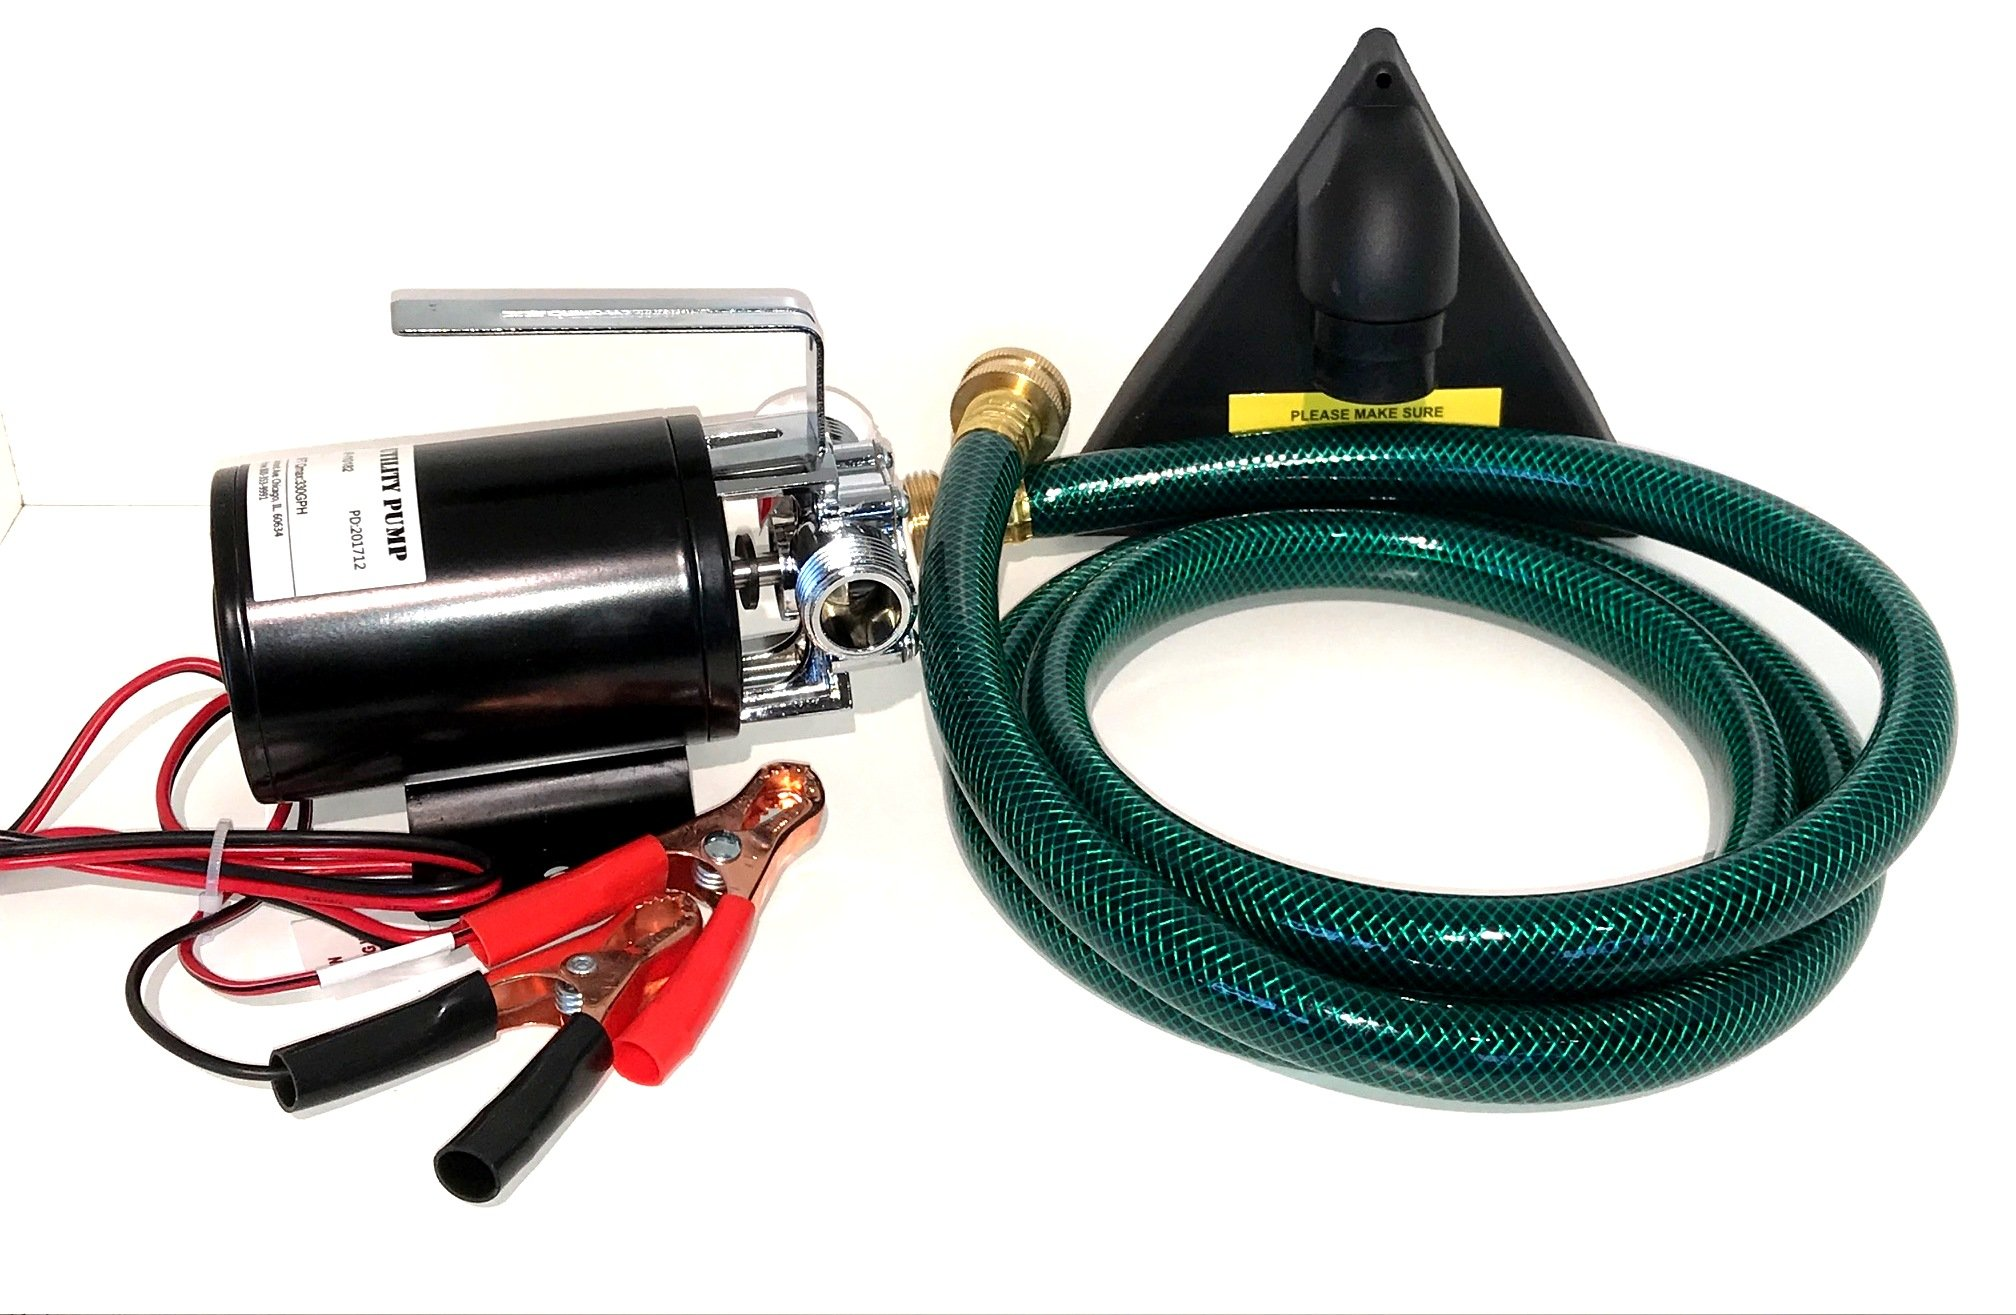 12-volt DC 1/10th HP 330 GPH Battery Powered Portable Mini Water Transfer Utility Pump with Metal Connectors for Standard 3/4'' Garden Hose Great for removing water from Boats Water Yard or Garden